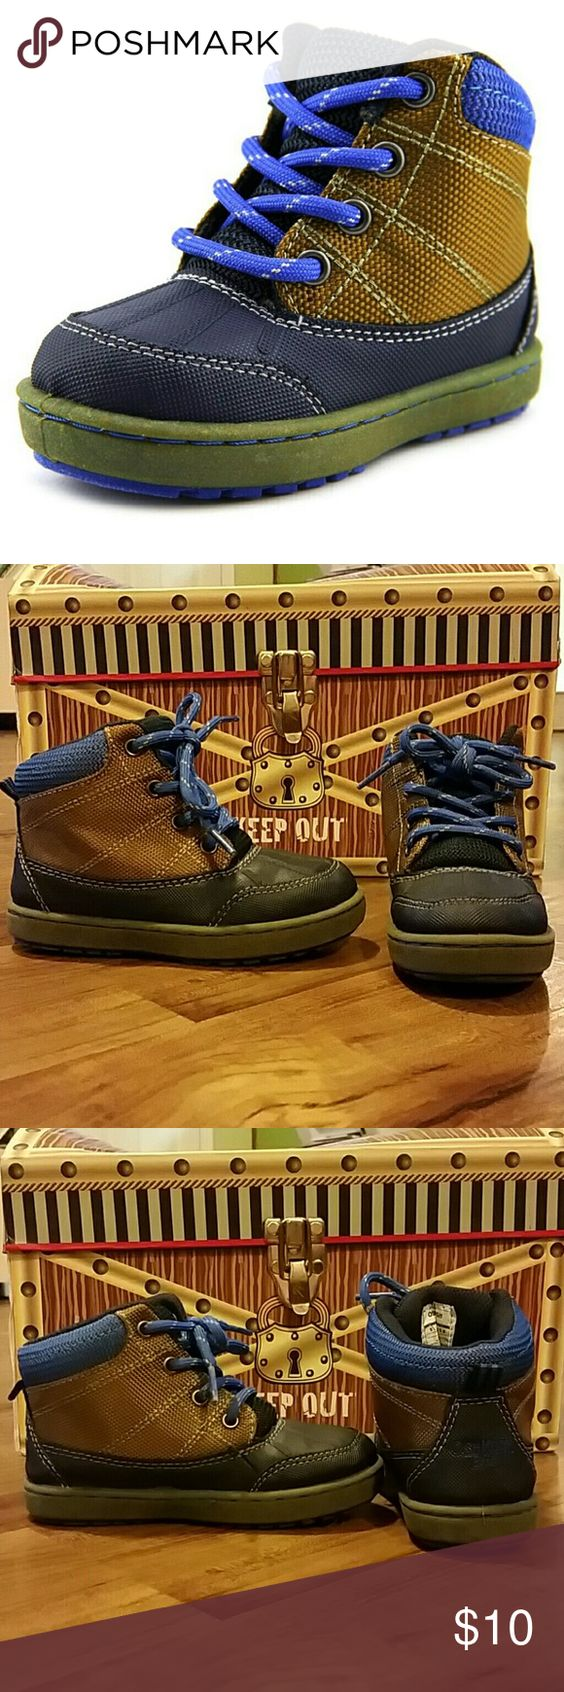 Osh Kosh Boots + Bonus! The Osh Kosh Liam 2 Boots feature a Canvas upper with a Round Toe . The Man-Made outsole lends lasting traction and wear. Navy and brown. Excellent condition - only worn once or twice! Throwing in a FREE pair of Gymboree slip ons (pic 4). In good used condition. Size 10 but fit like a 9. Osh Kosh Shoes Boots